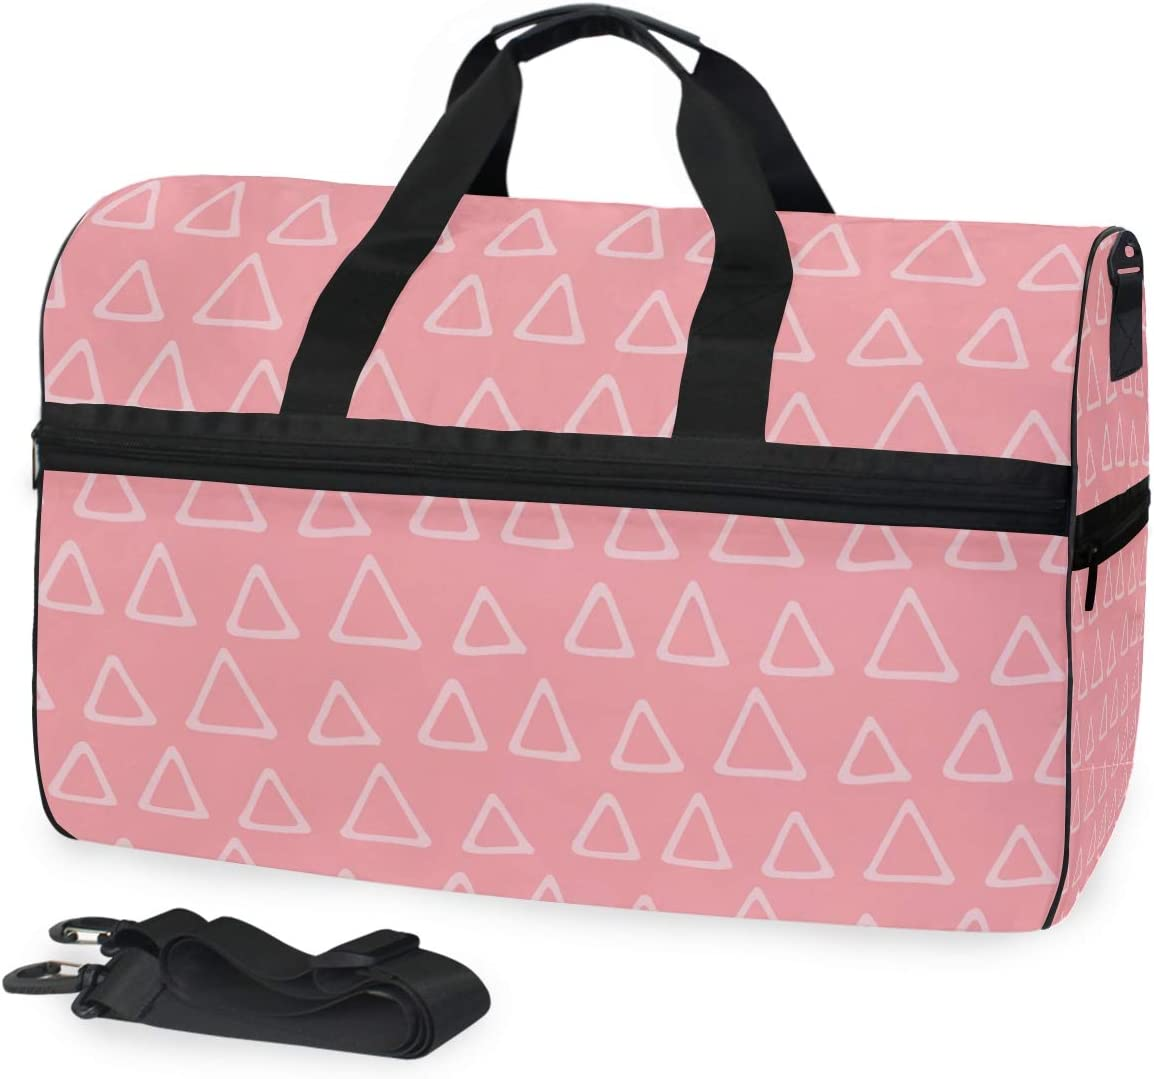 FAJRO Duffle Bag for Women Men Pink Triangle Travel Duffel Bag Large Size Water-proof Tear Resistant